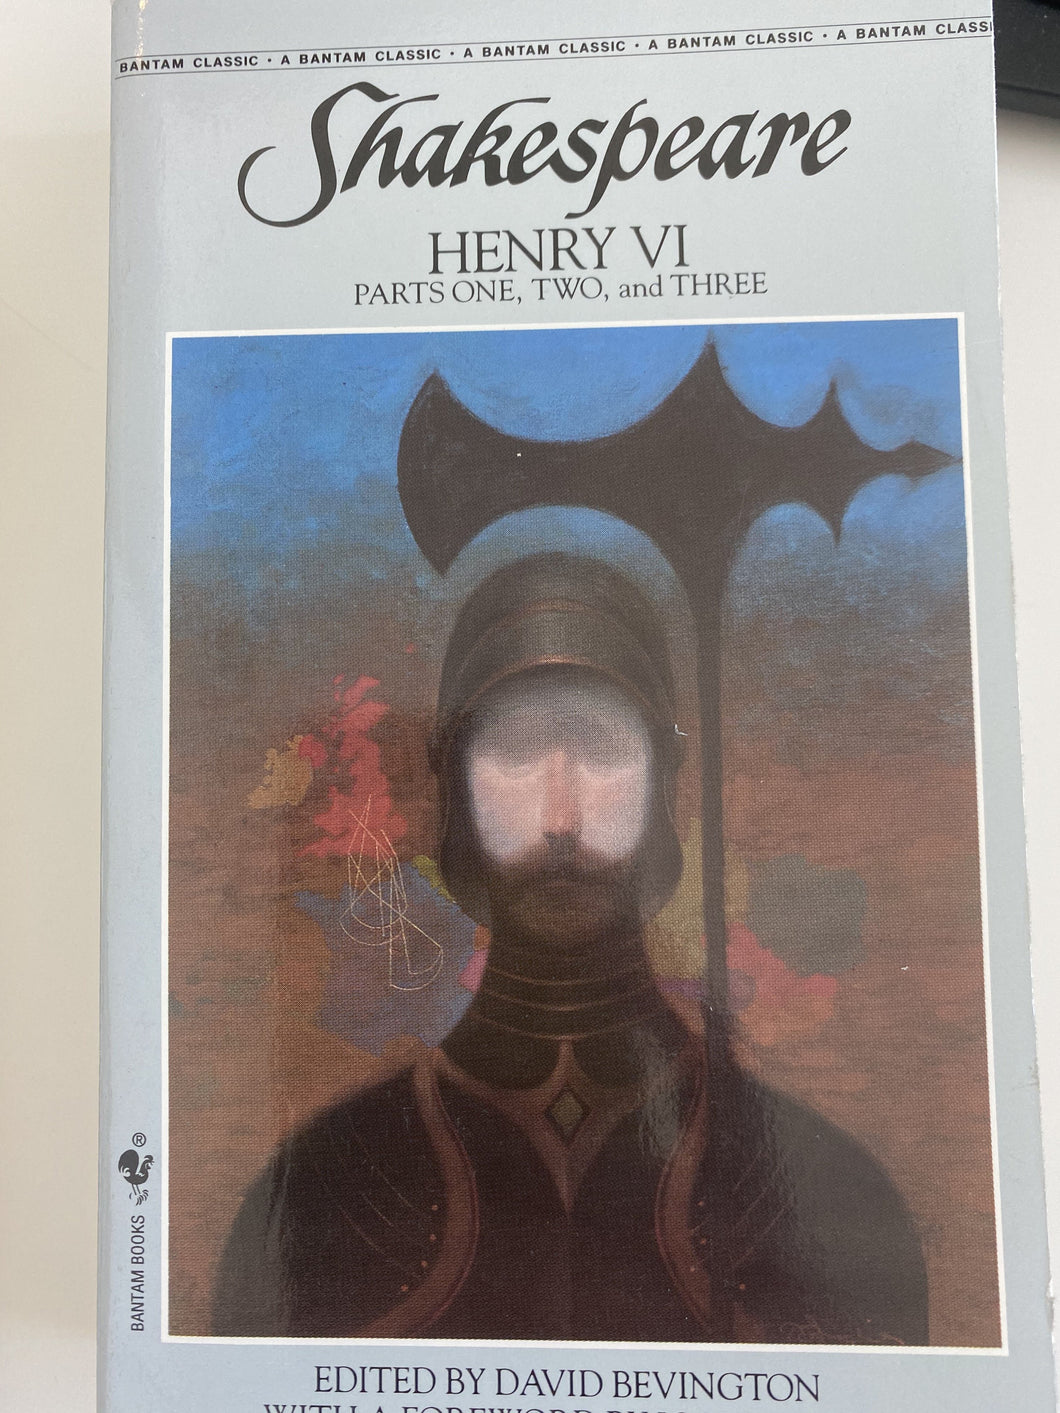 Henry VI ( Part 1, 2, and 3) - William Shakespeare